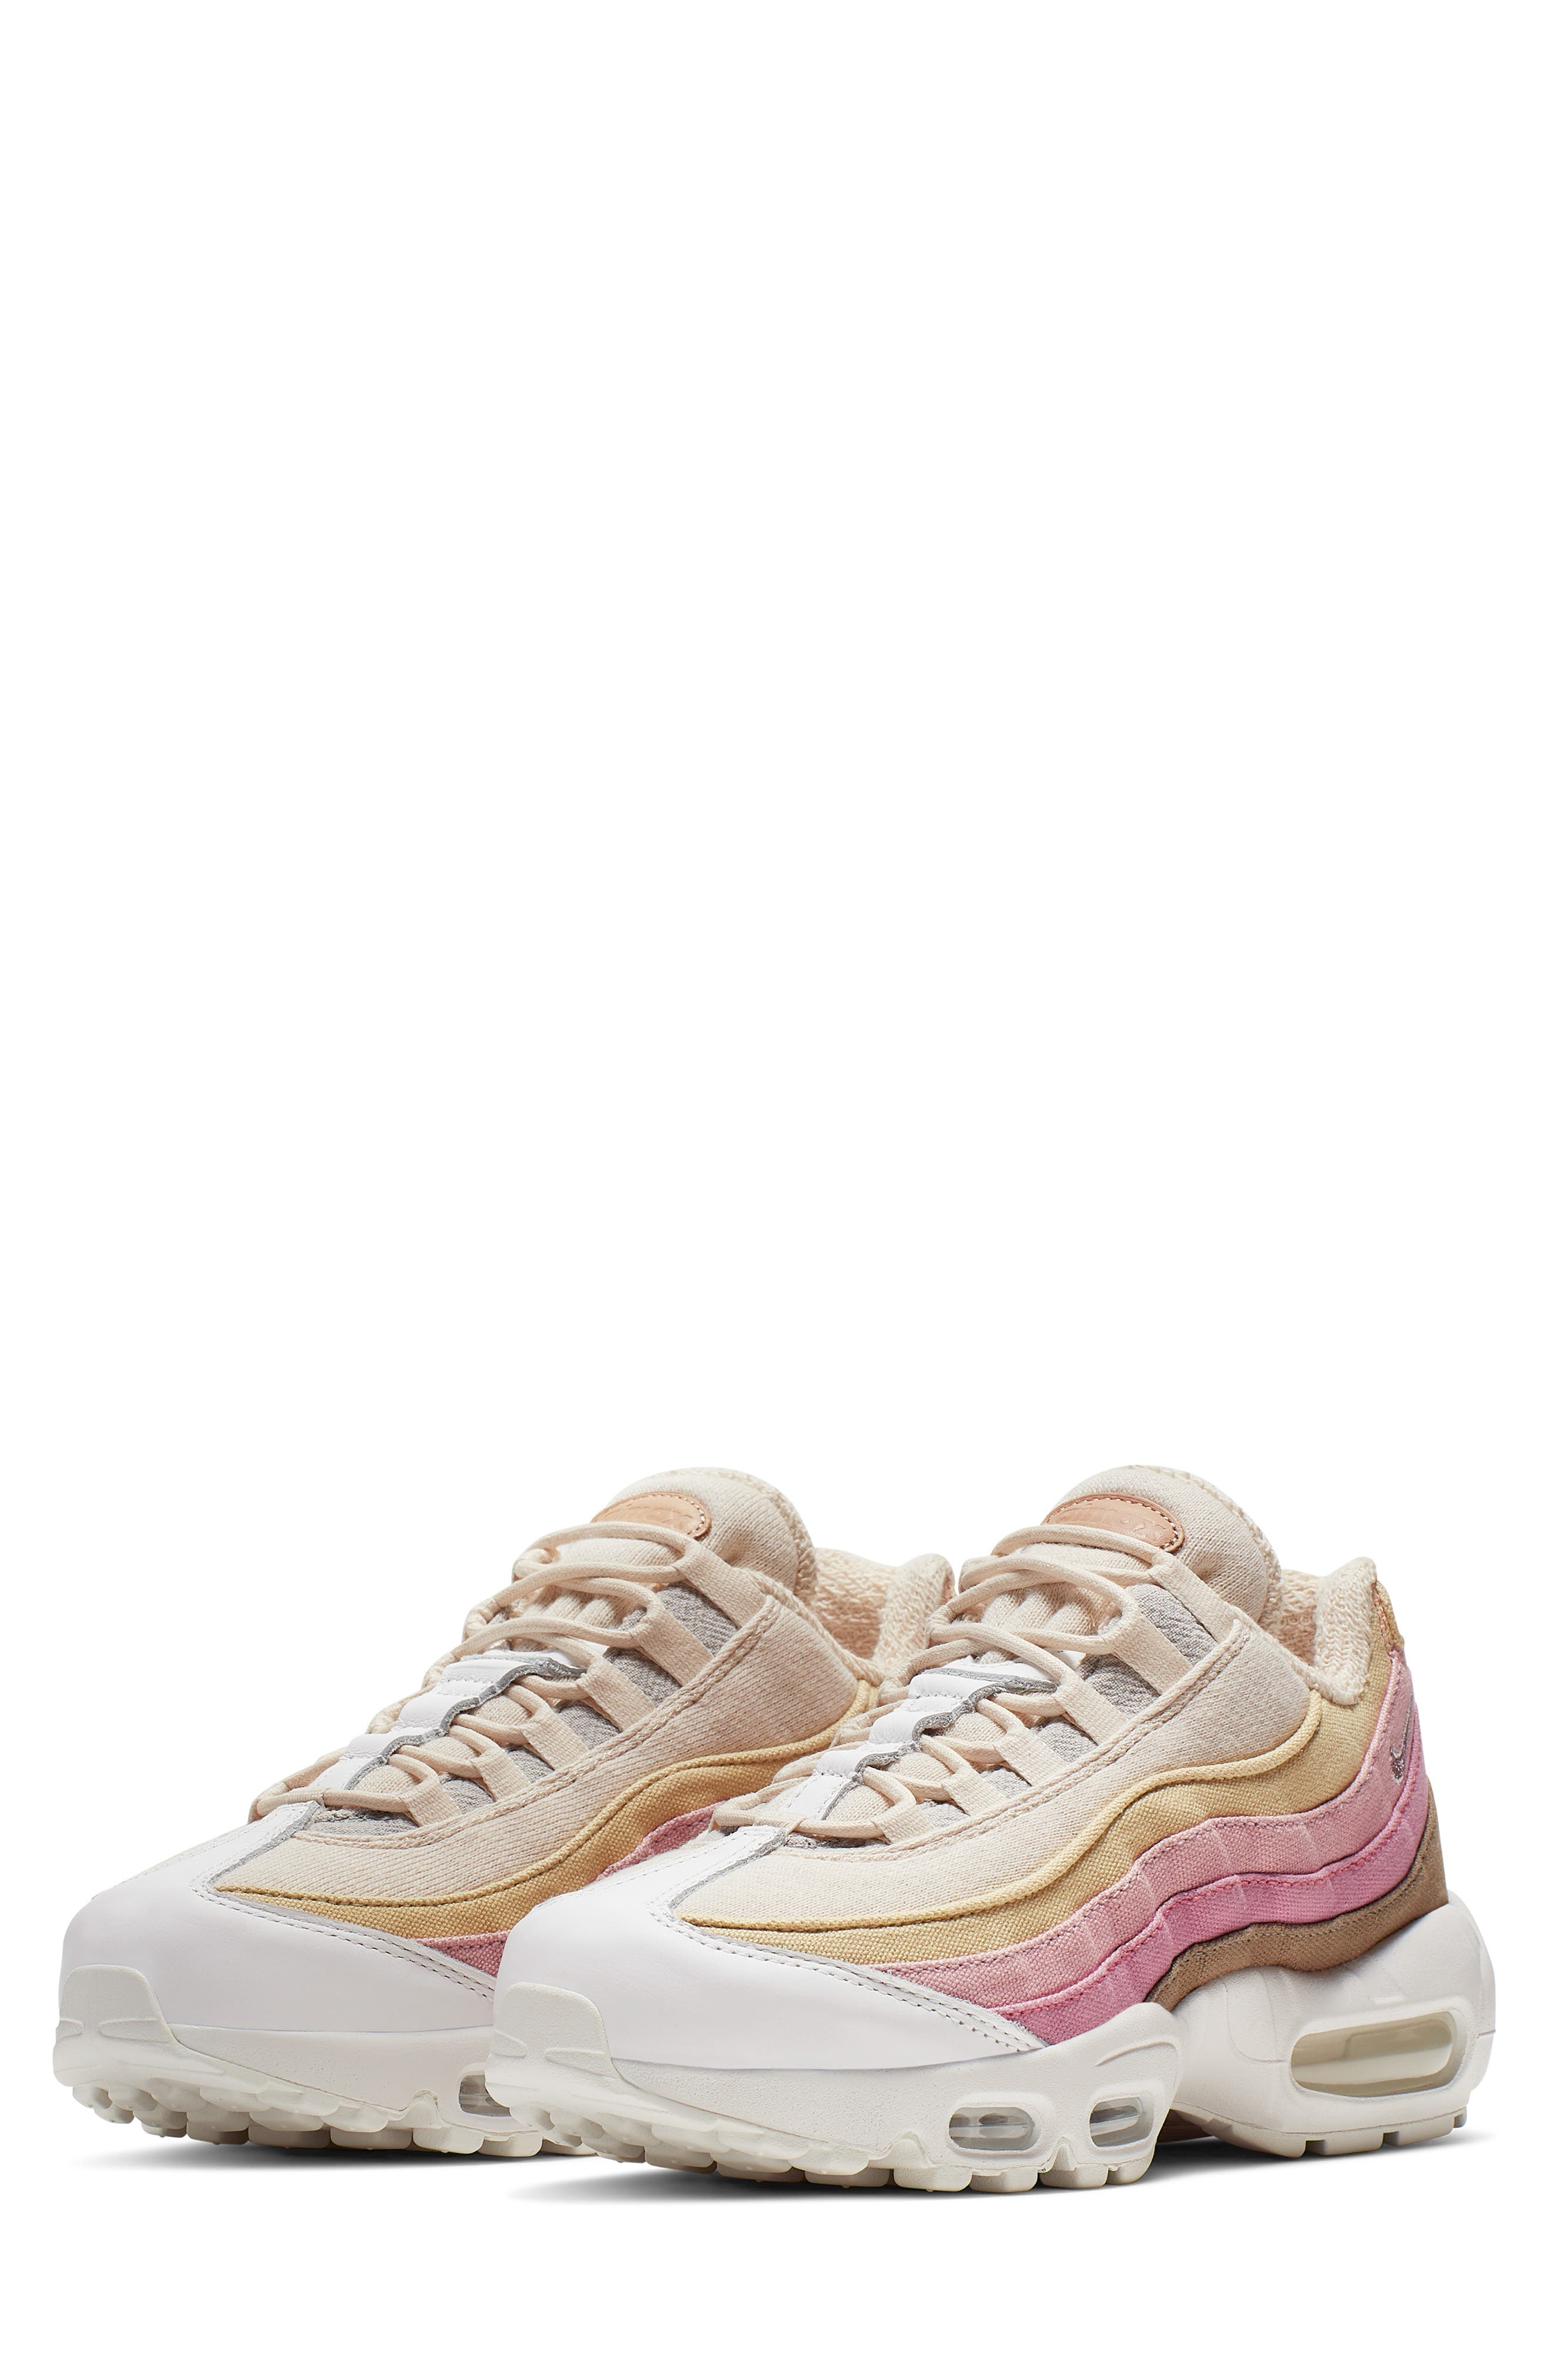 Air Max 95 Plant Color Collection Beige (W) in BeigeTan Pink Coral White